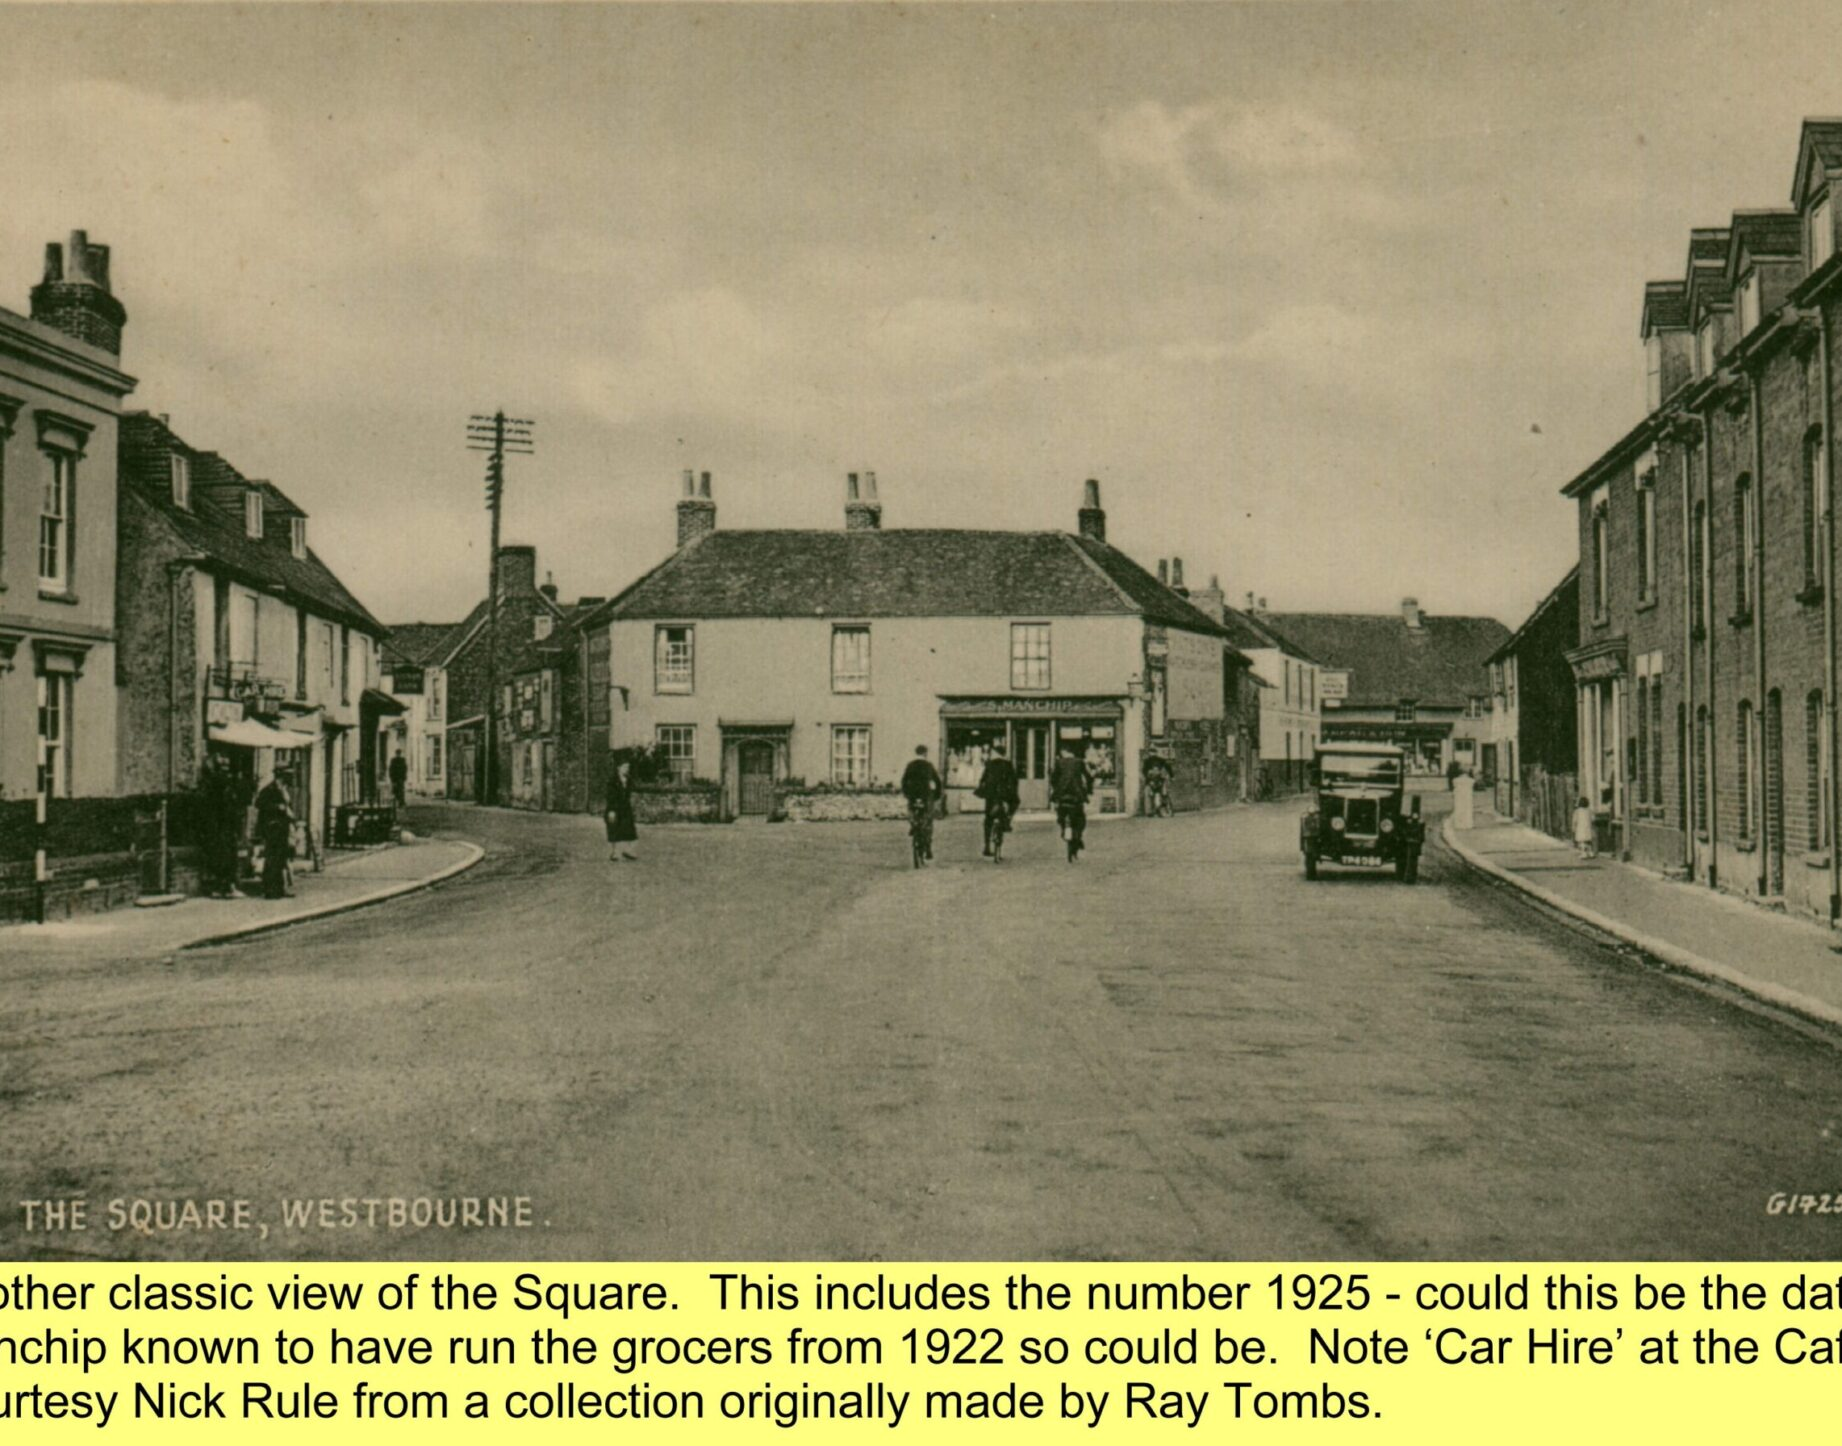 WESTBOURNE HISTORY PHOTO, SQUARE, GROCER, TREE, COMBER. MANCHIP, COUNTRY STORE, CENTRA, CAFE. CAR HIRE